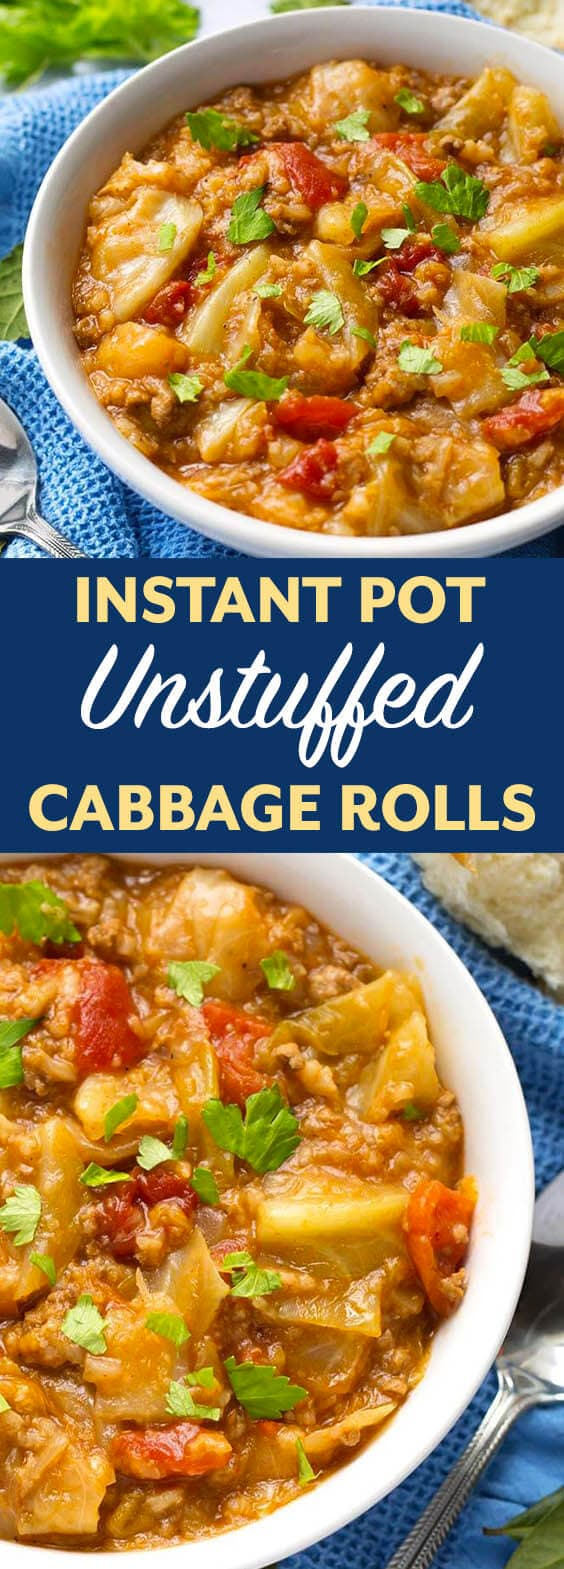 Instant Pot Unstuffed Cabbage Rolls is a heart, thick stew with the same ingredients as a cabbage roll - unstuffed! This pressure cooker unstuffed cabbage rolls recipe is delicious, and a little old fashioned comfort food. simplyhappyfoodie.com #instantpotrecipes #instantpotunstuffedcabbagerolls #instantpotcabbage #pressurecookerunstuffedcabbage